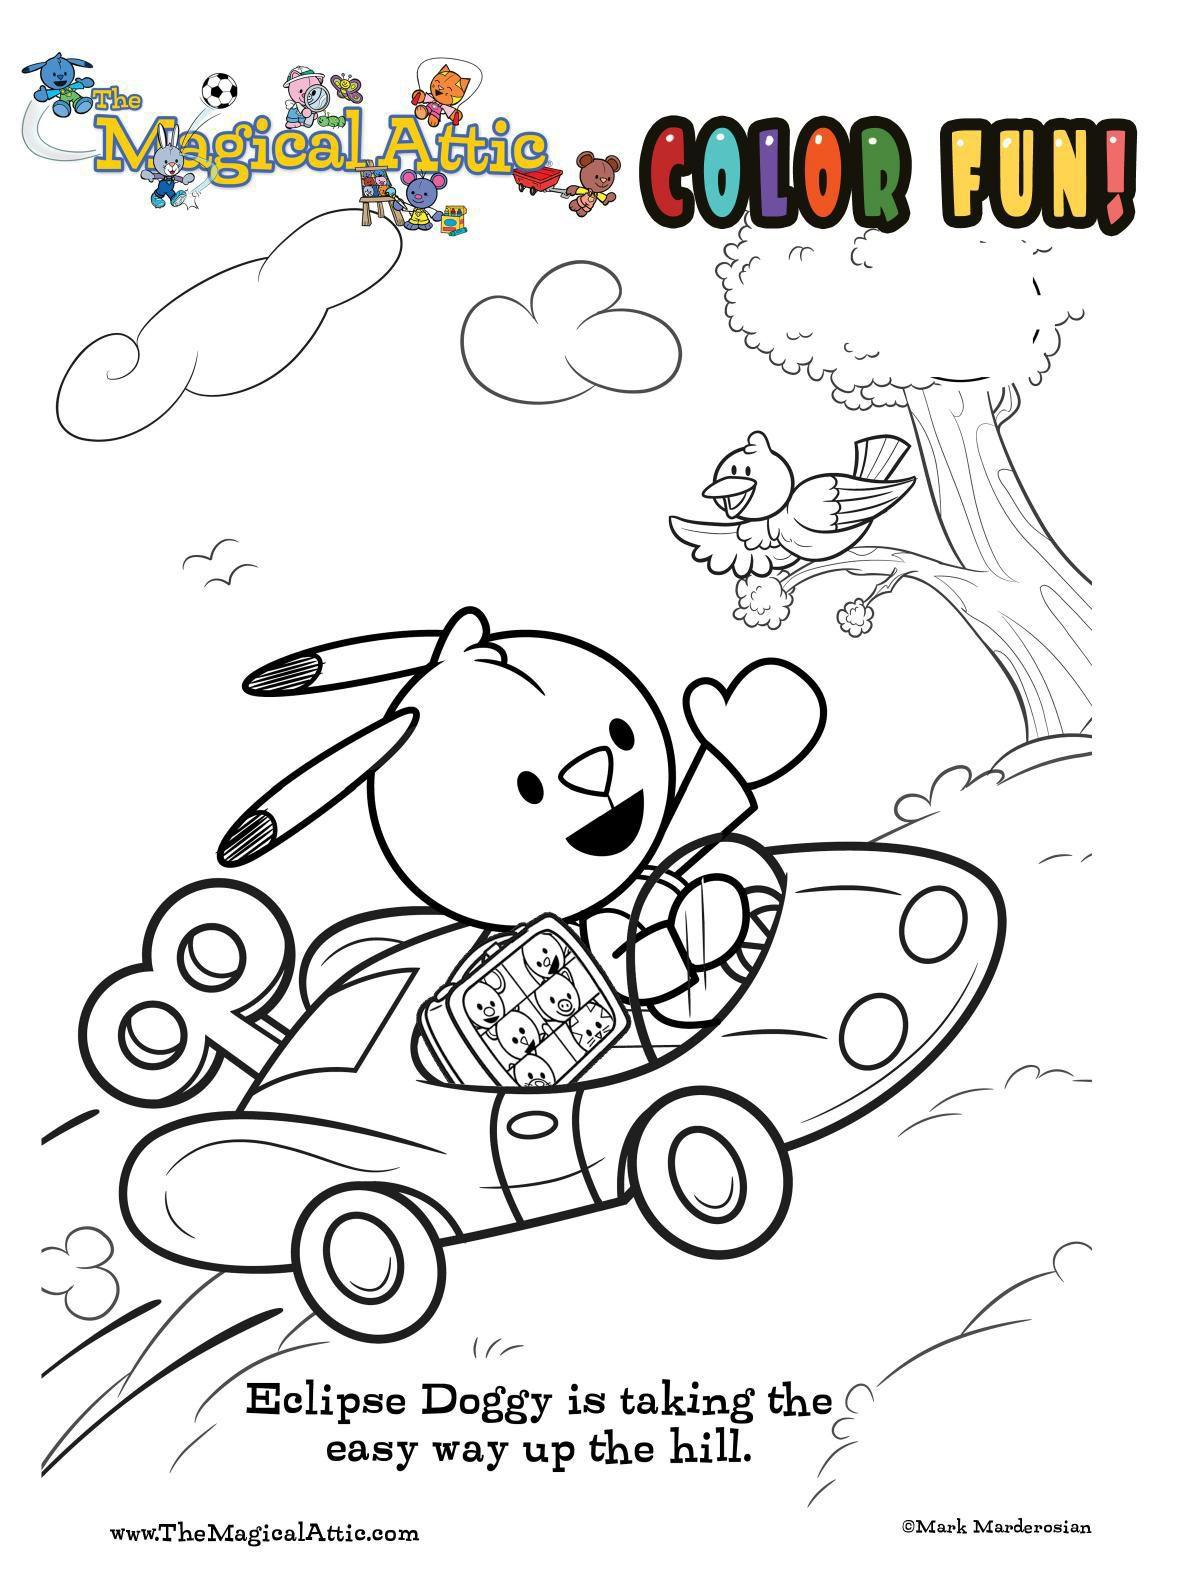 Coloring with Eclipse Doggy